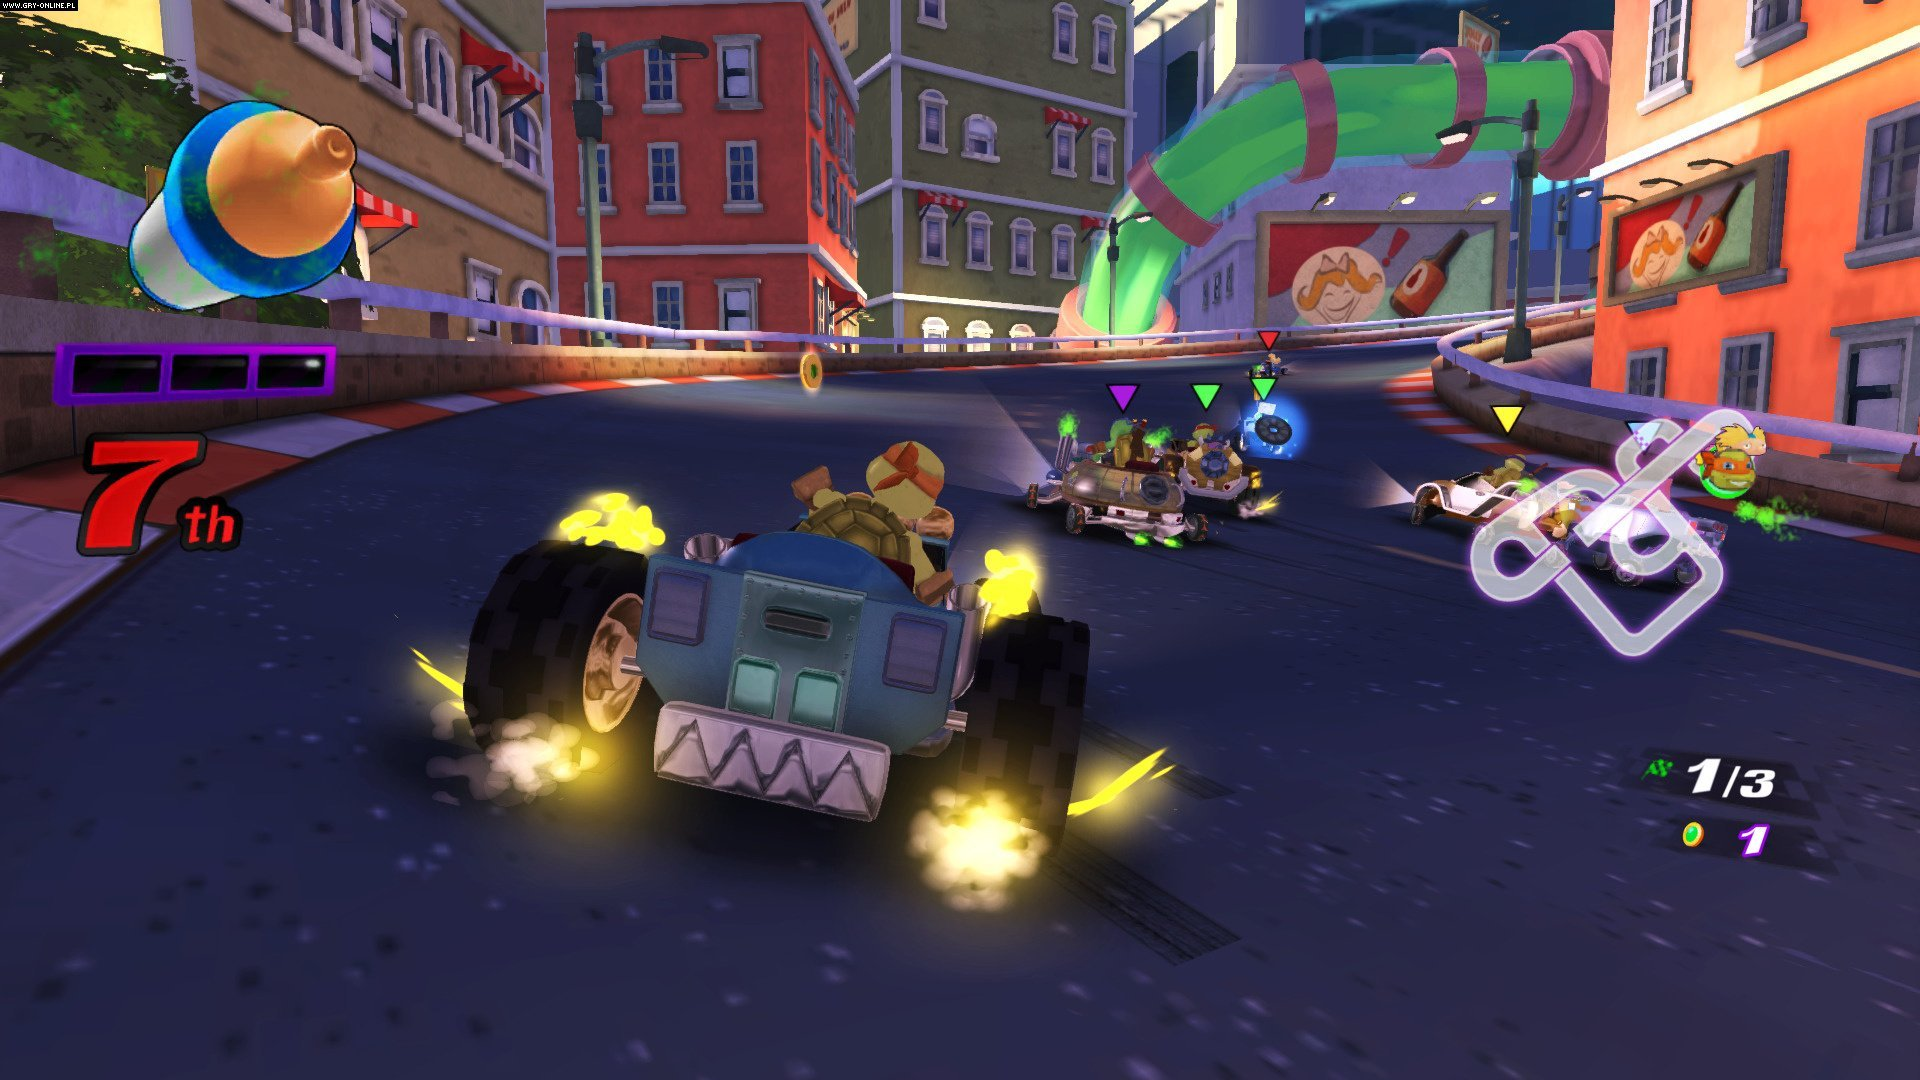 Nickelodeon Kart Racers PS4, XONE, Switch Gry Screen 9/12, GameMill Entertainment